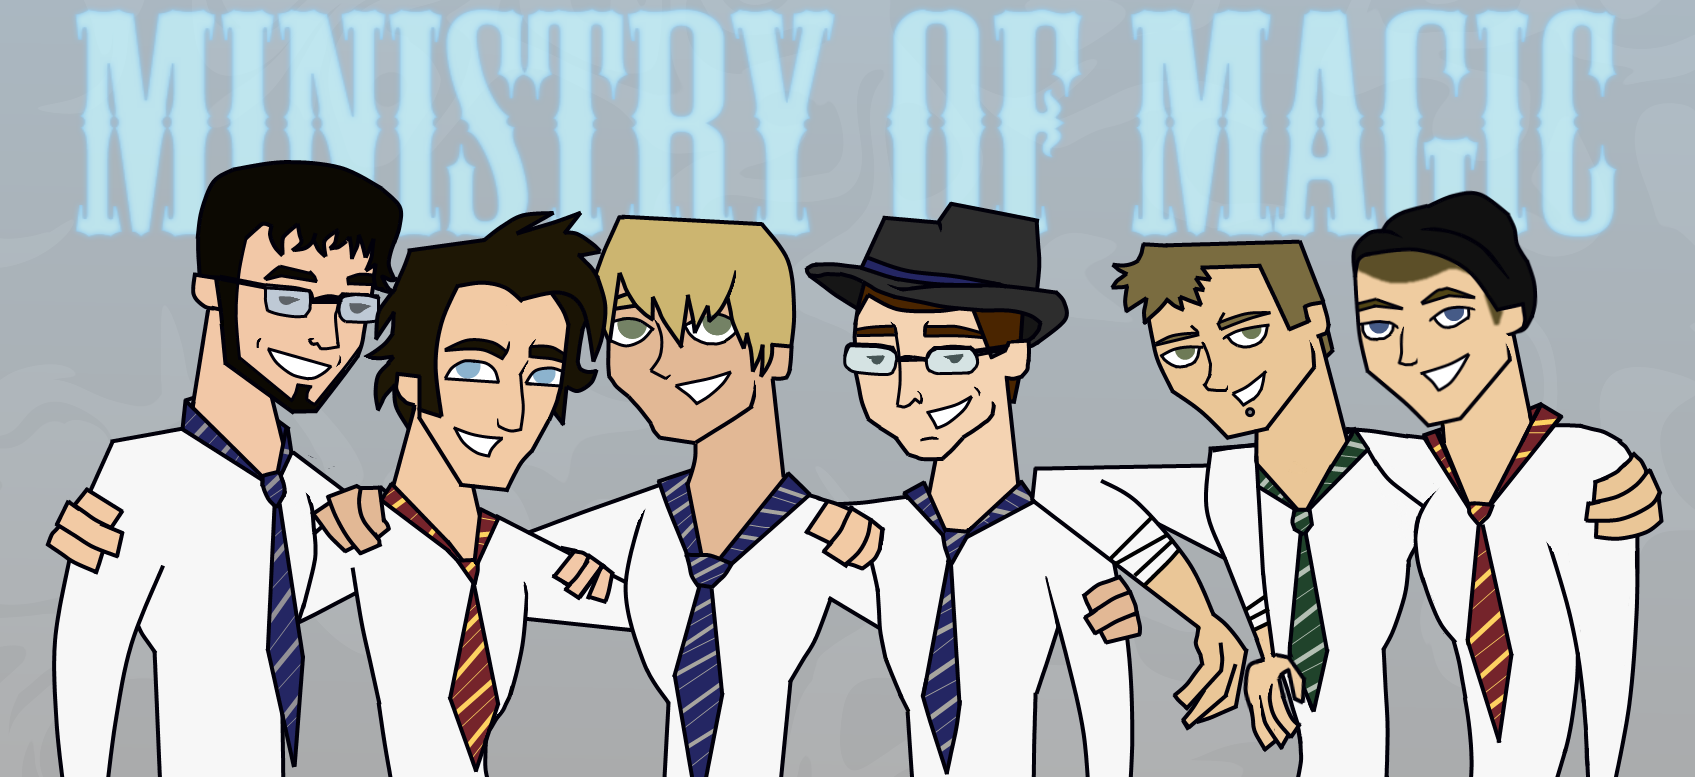 MoM-Total Drama style